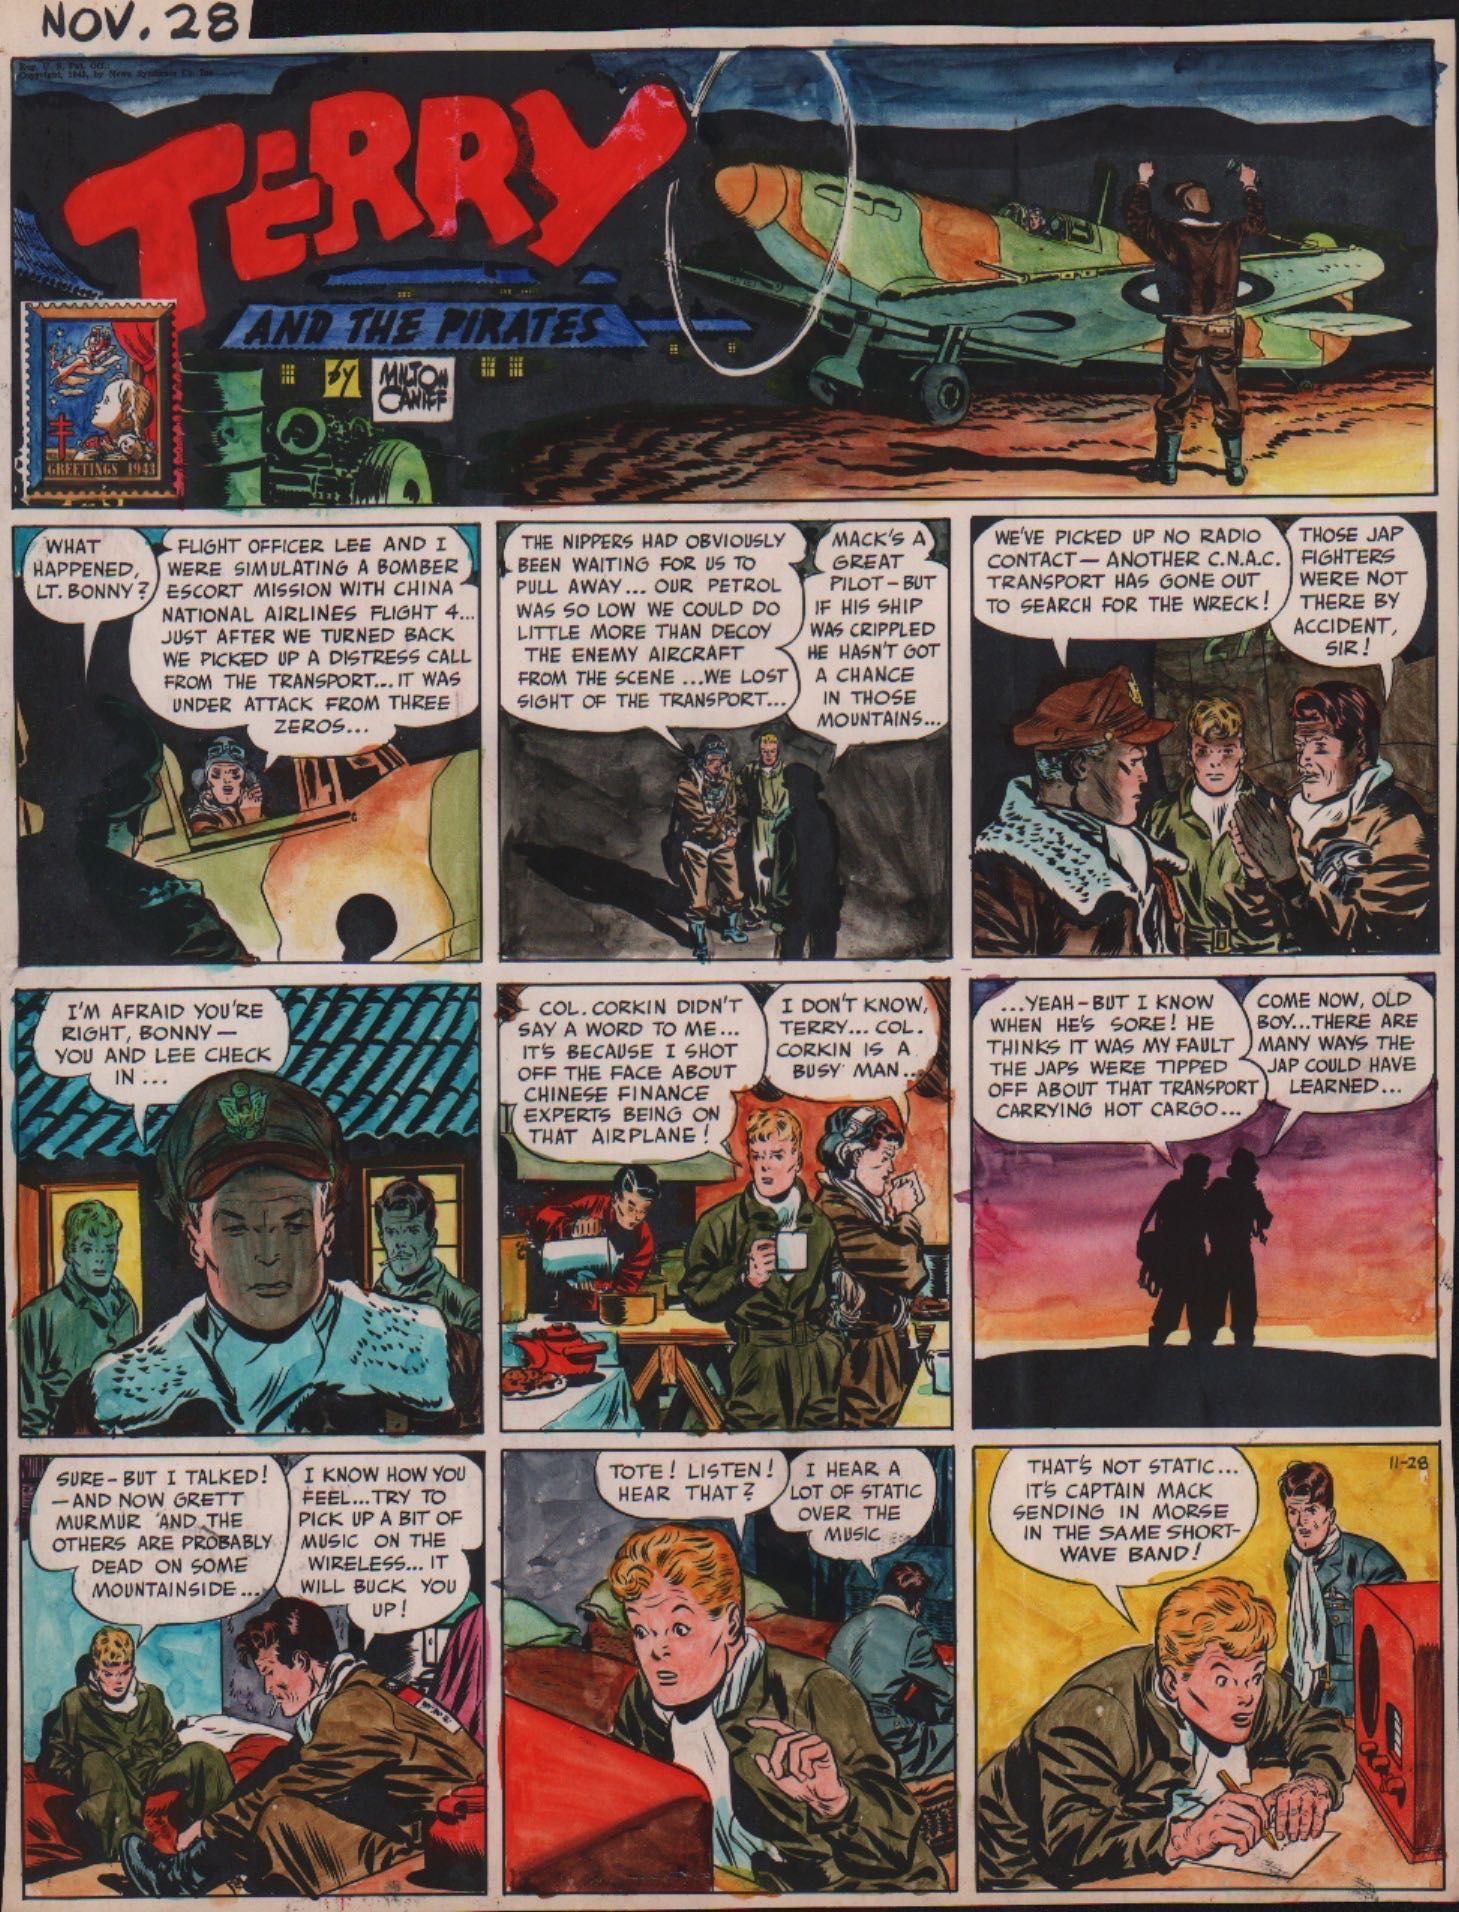 Terry And The Pirates Color Sheet Nov 28 1943 By Milton Caniff Fantasy Comics Comic Illustration Newspaper Comic Strip